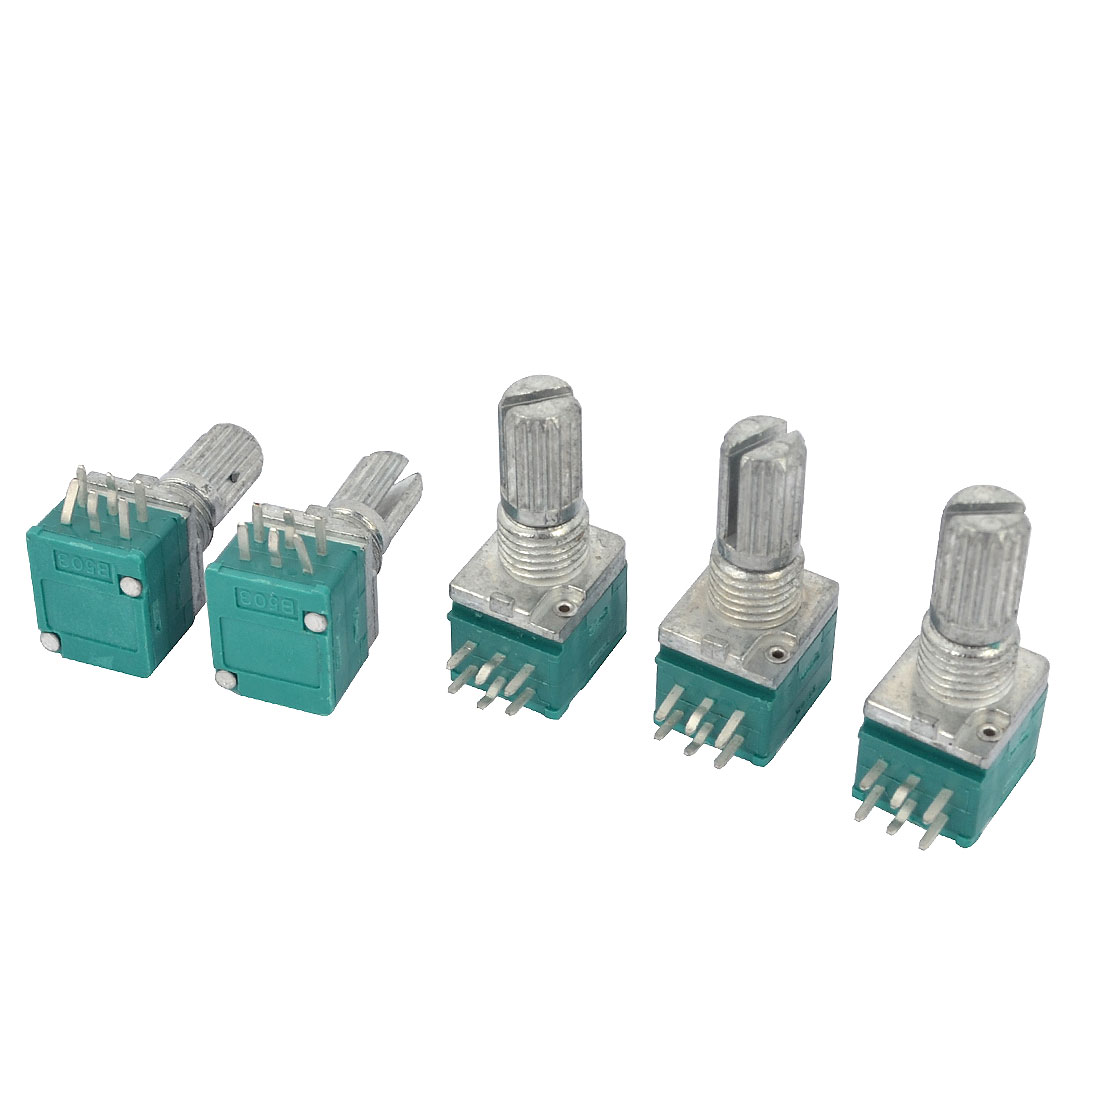 B50K 50K Ohm Green Top Rotary Single Turn Taper Linear Adjustment Variable Knurled Shaft Potentiometer 5 Pcs